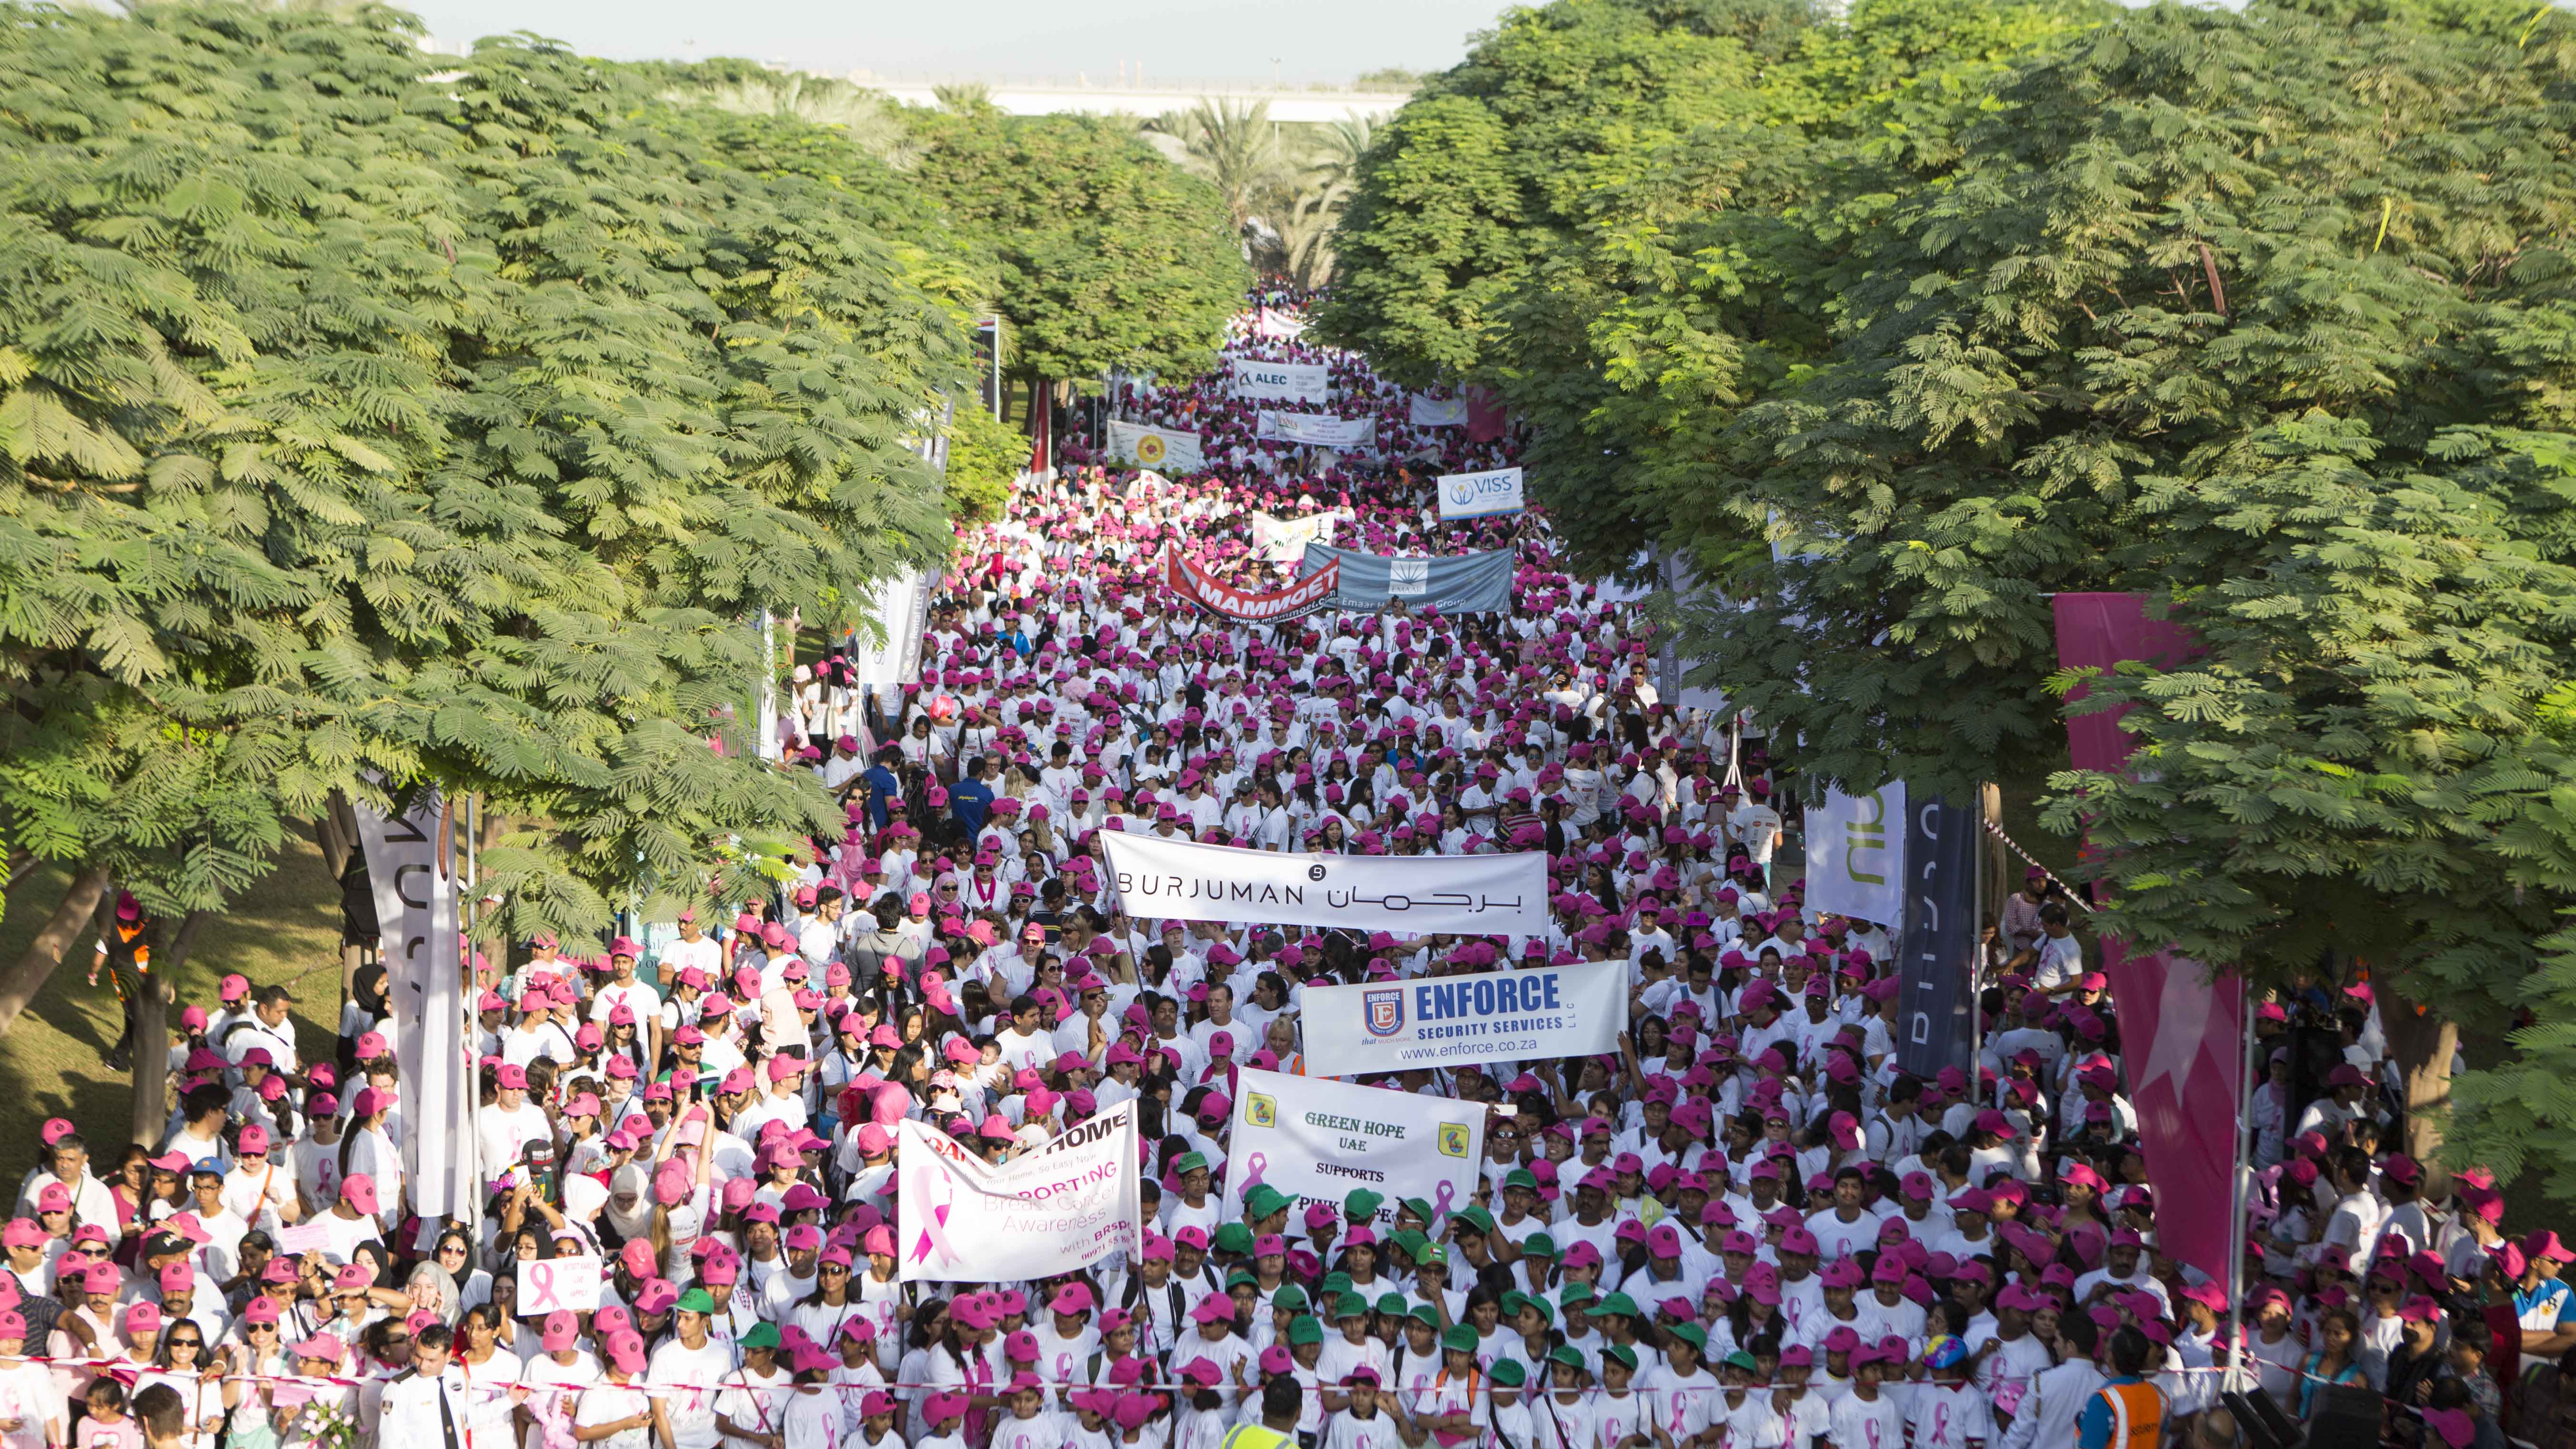 Thousands Step Out To Support Breast Cancer Awareness At